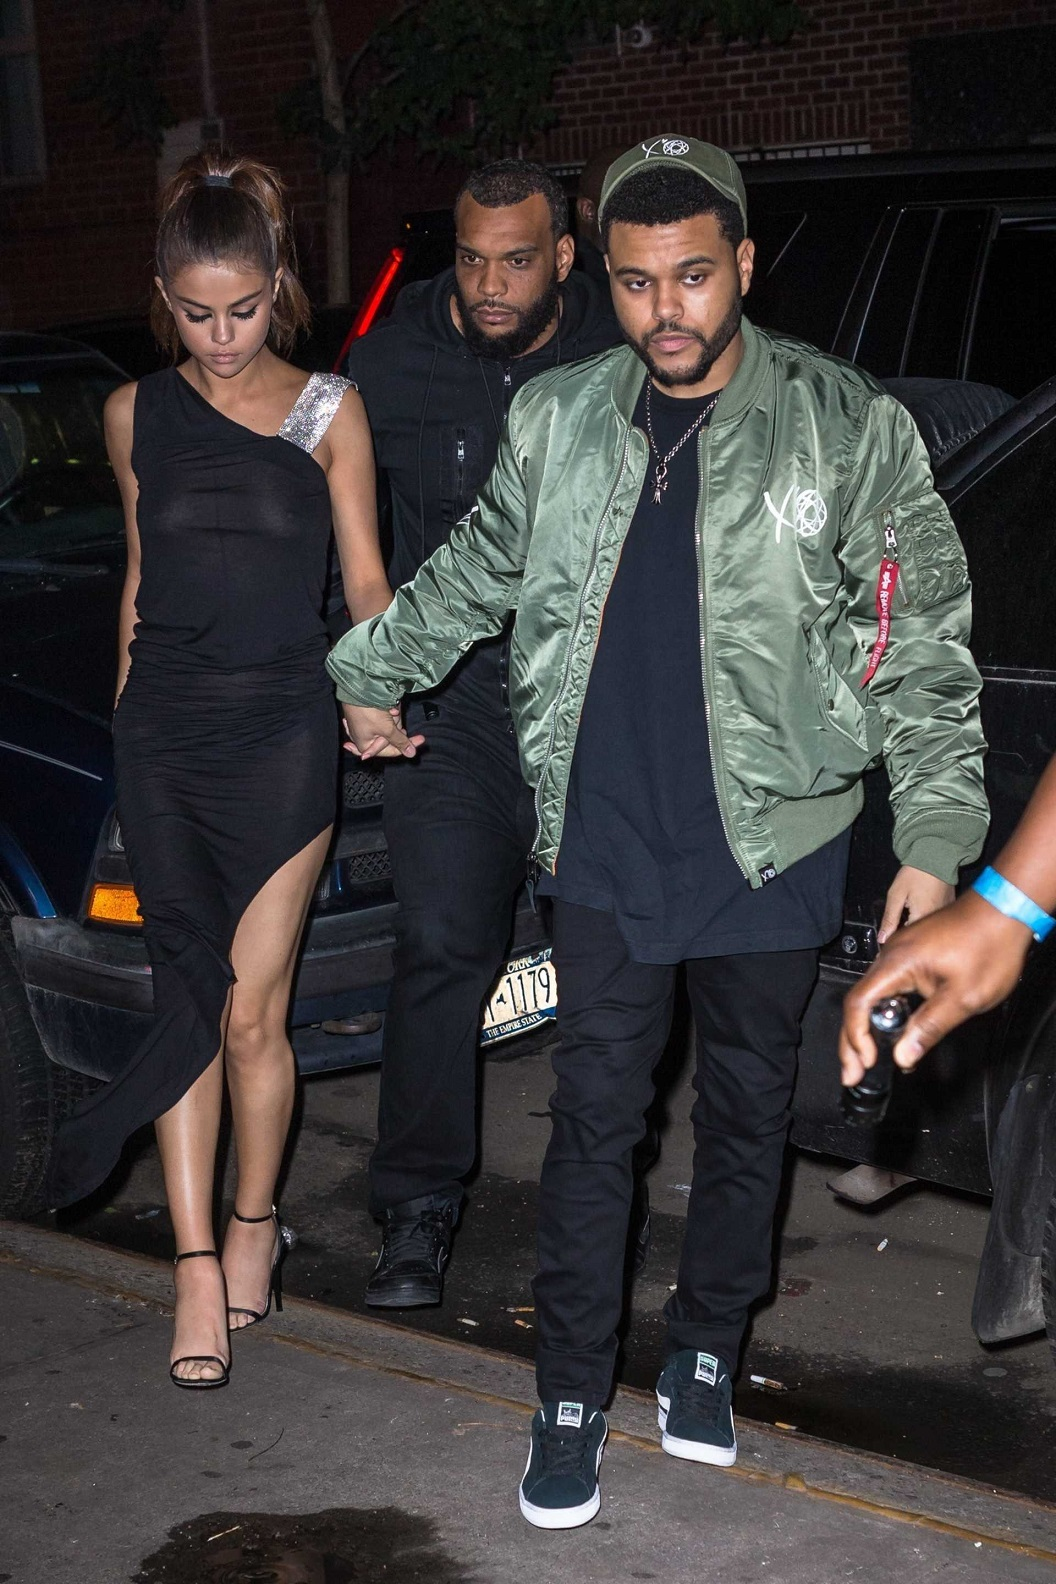 Selena Gomez goes braless for dinner date with The Weeknd